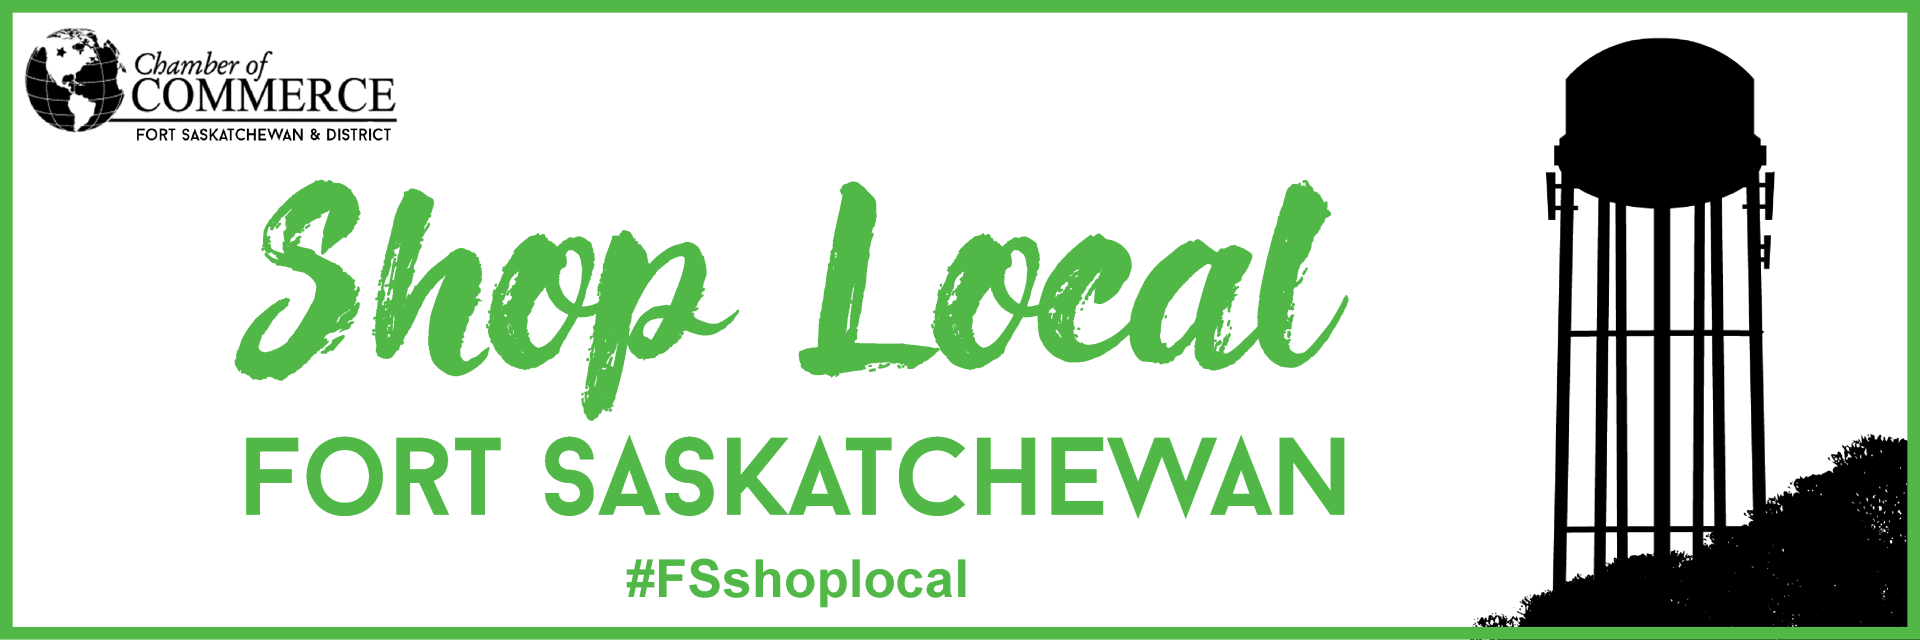 ShopLocal-Website-banner-w1920.png